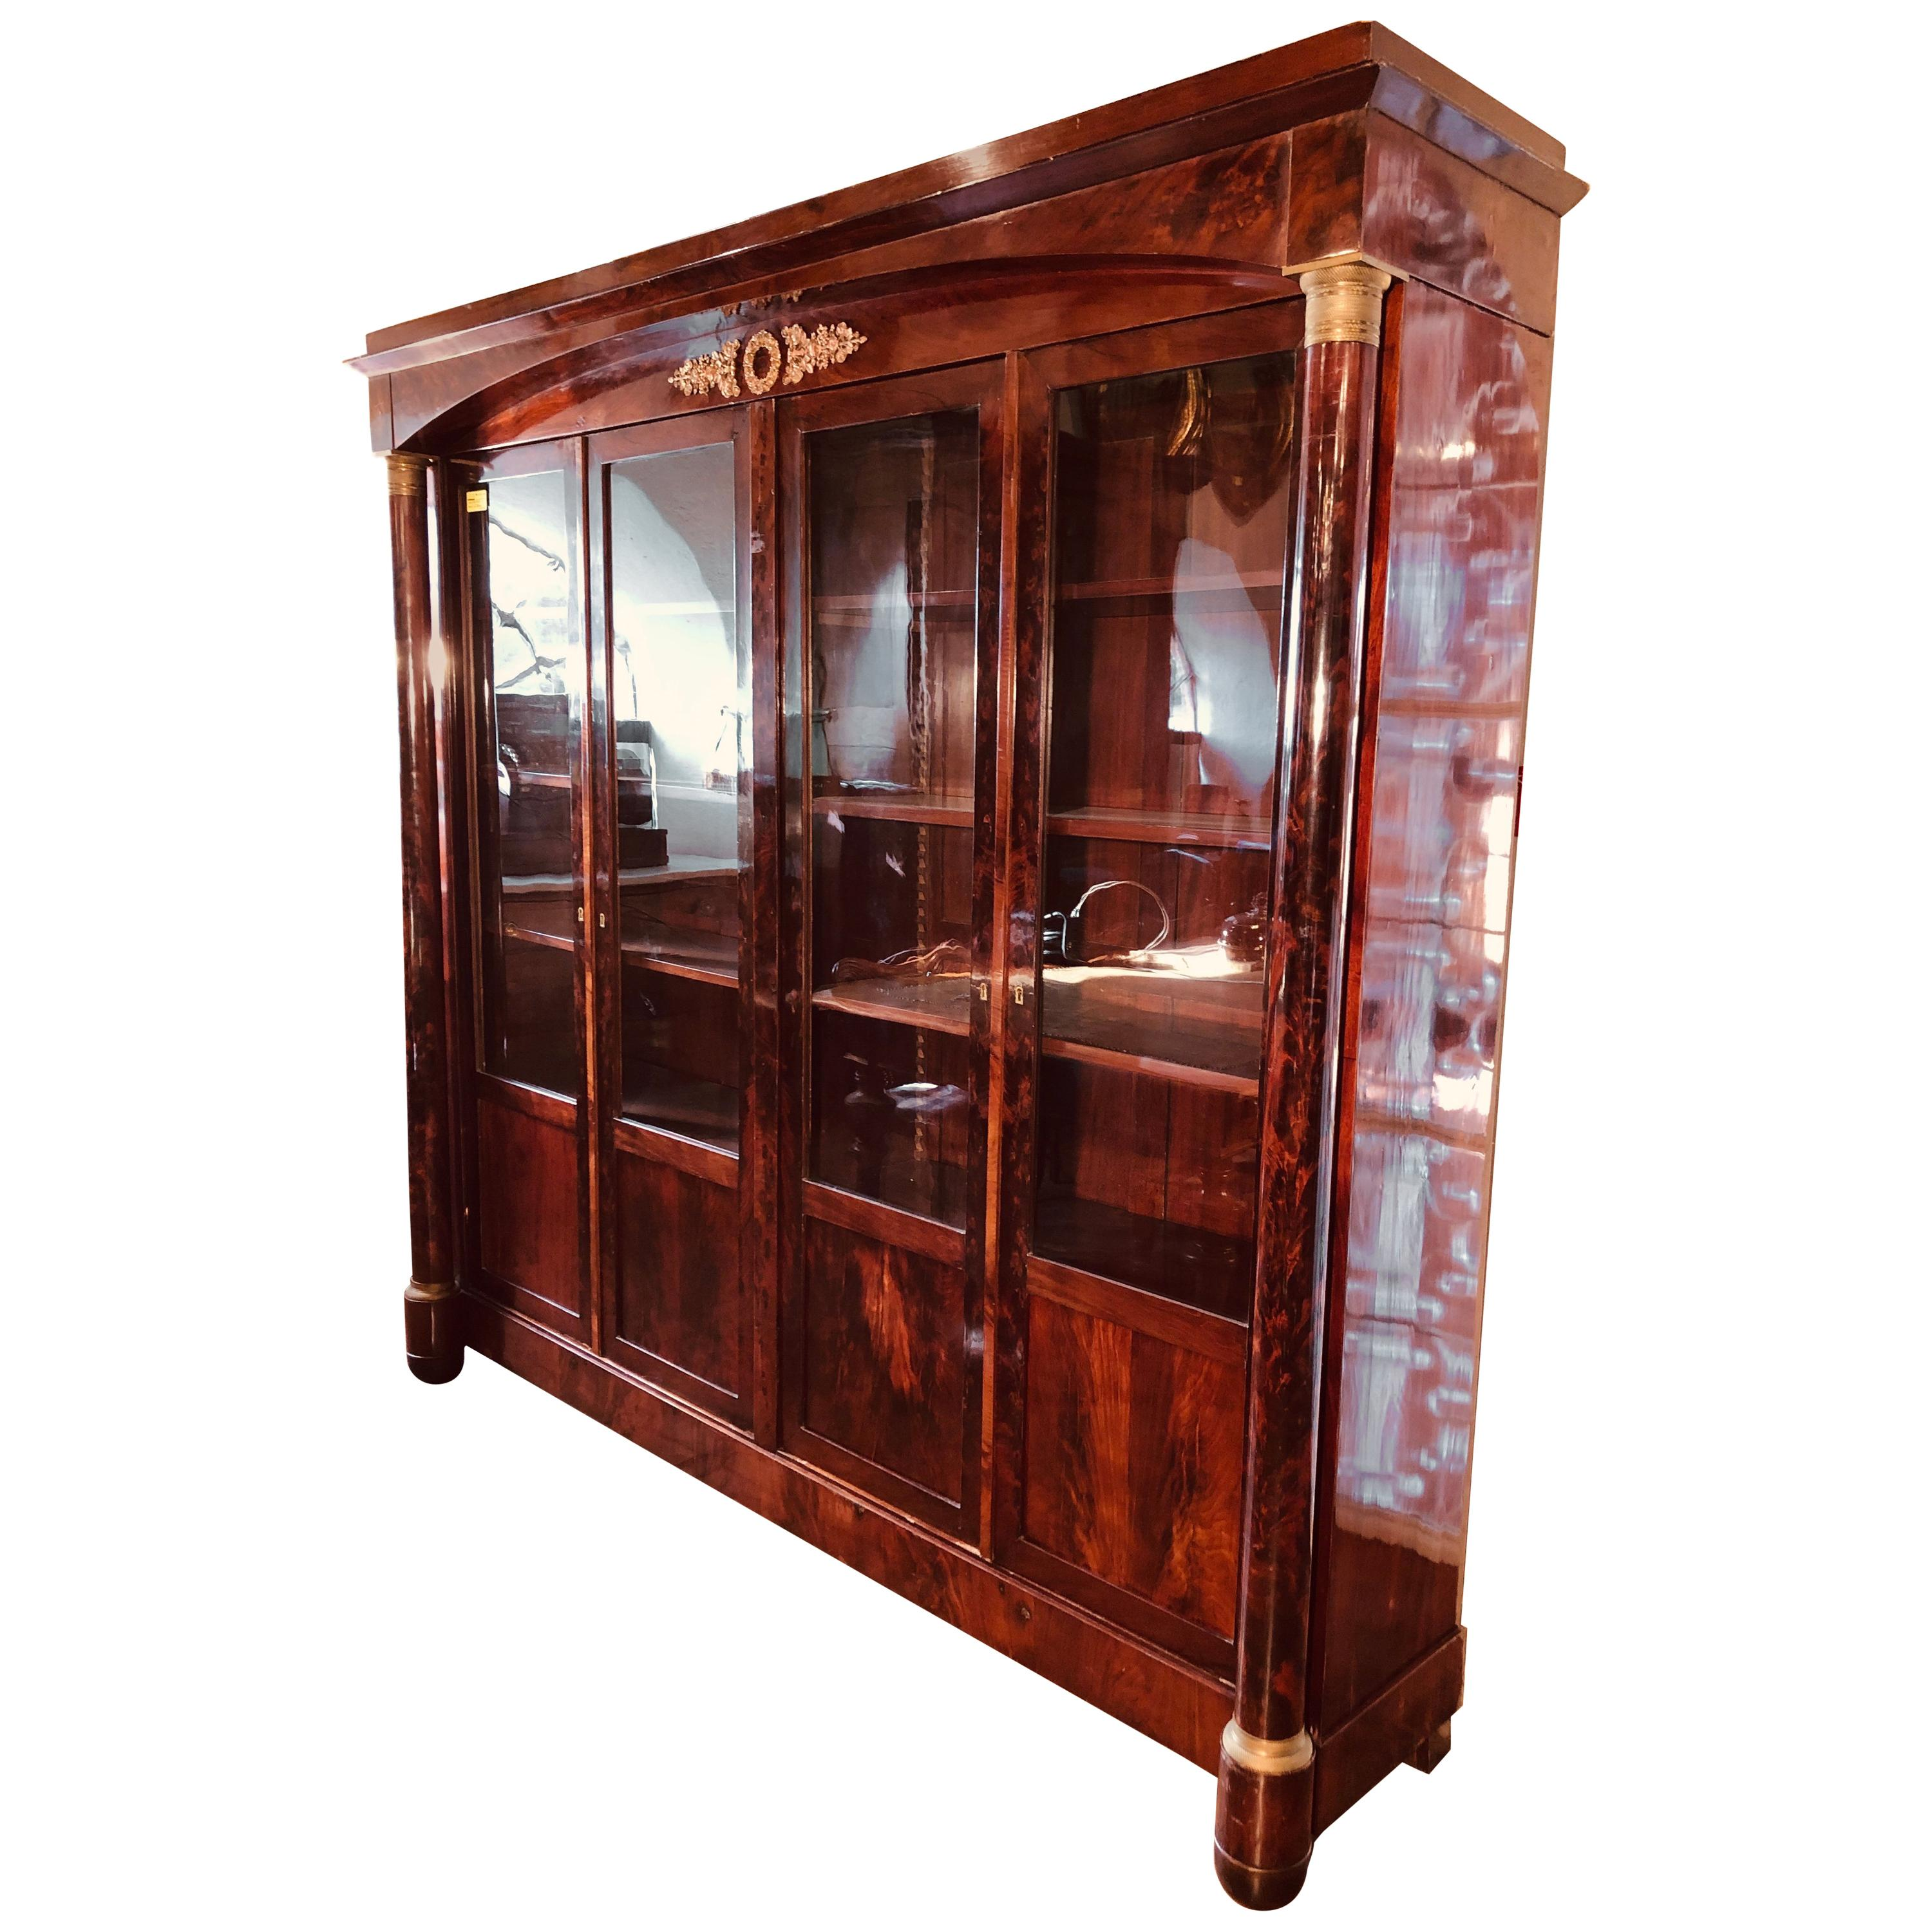 Mahogany Bookcases 633 For Sale At 1stdibs